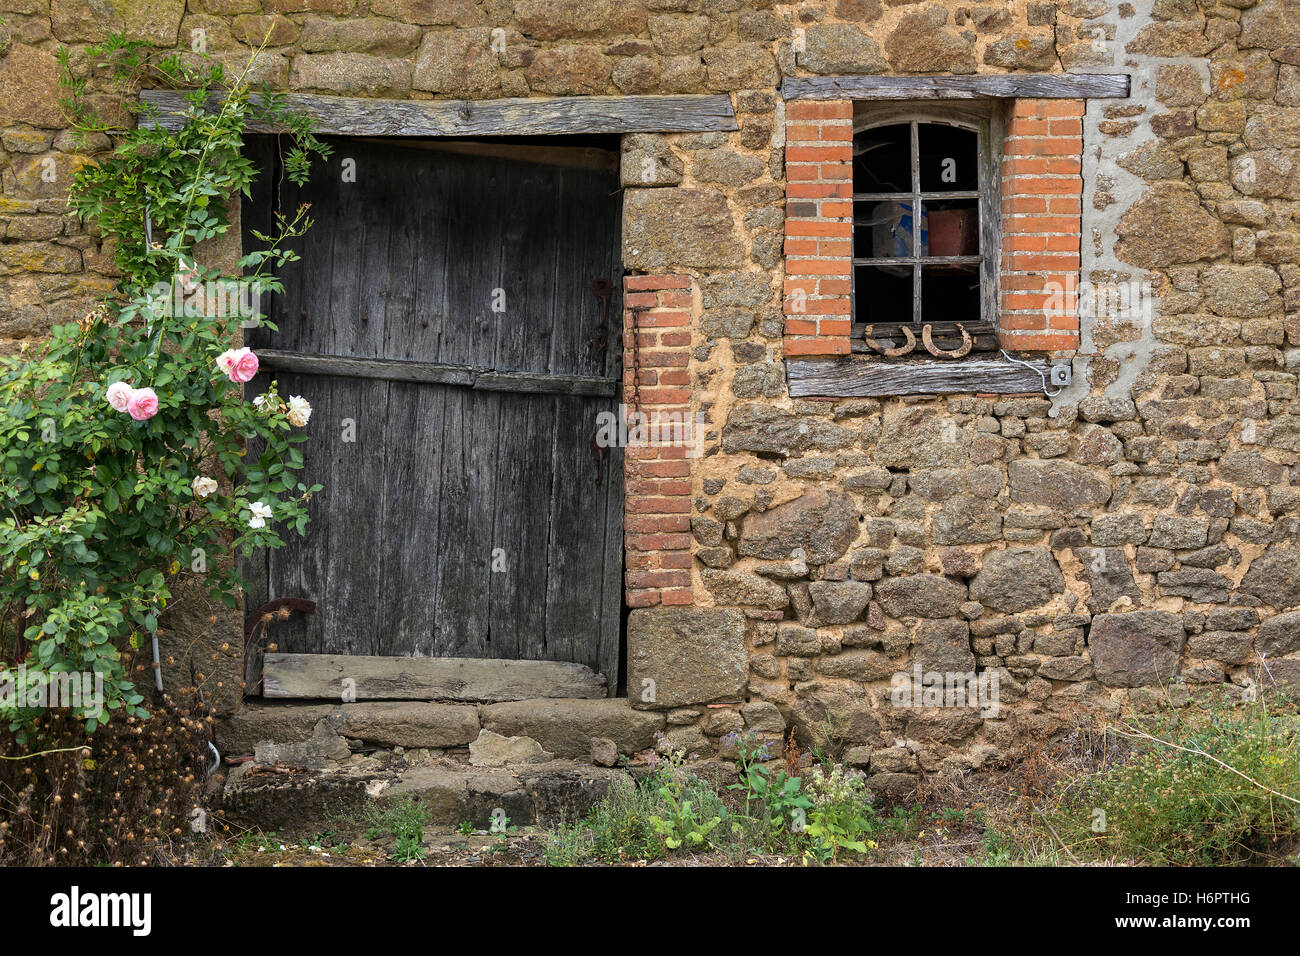 Exterior of a old agricultural building in northern France. - Stock Image